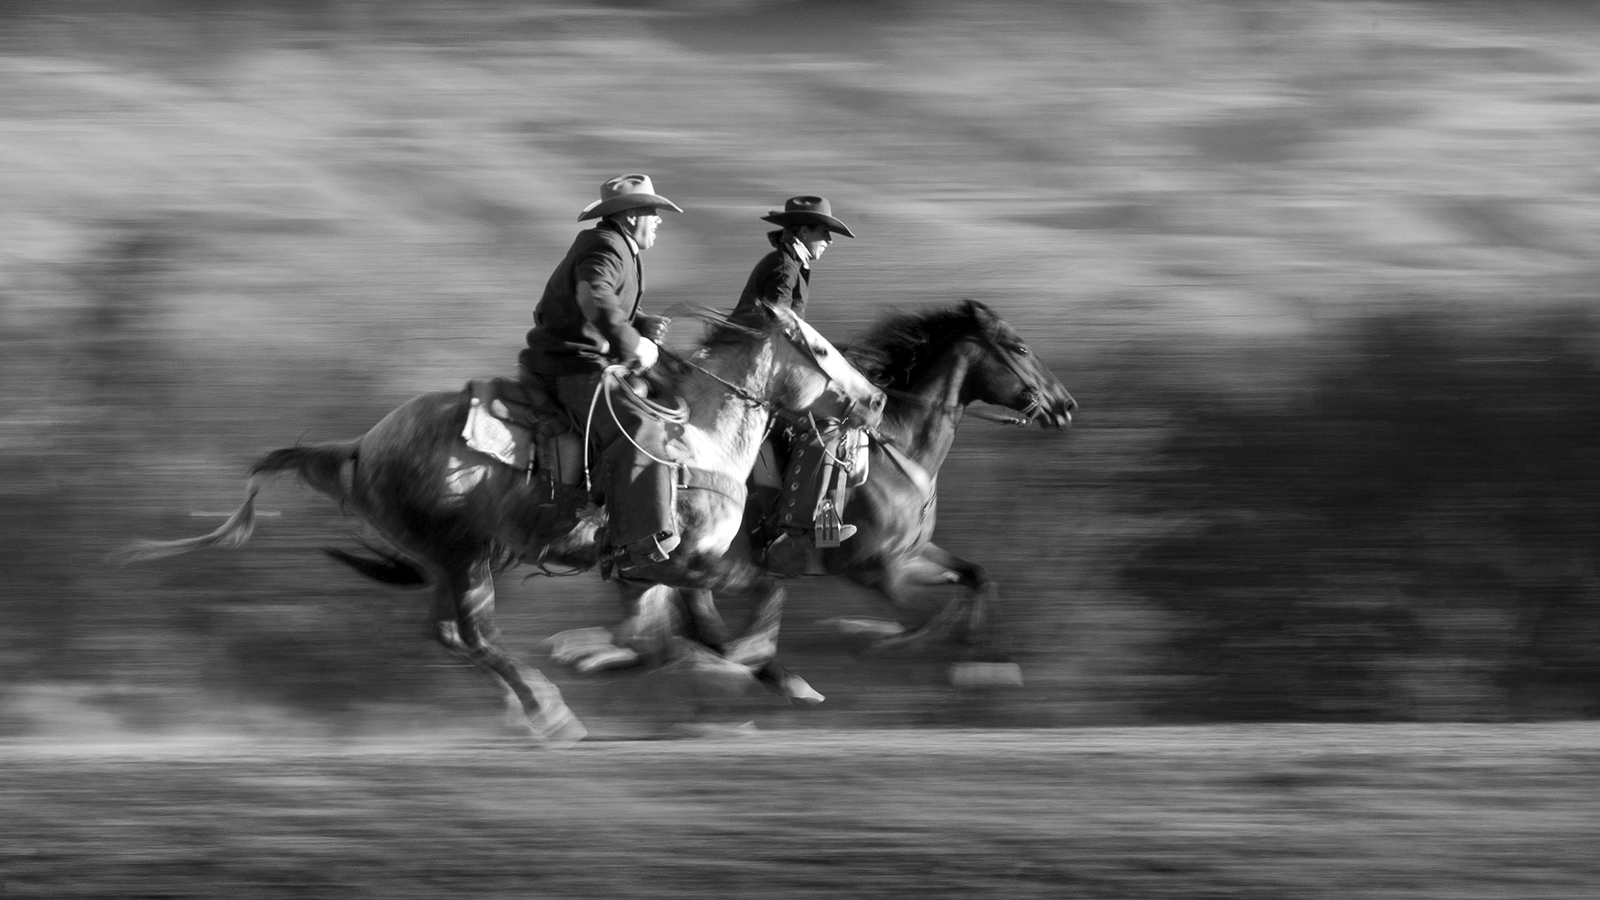 Two riders gettin' it at a gallop.